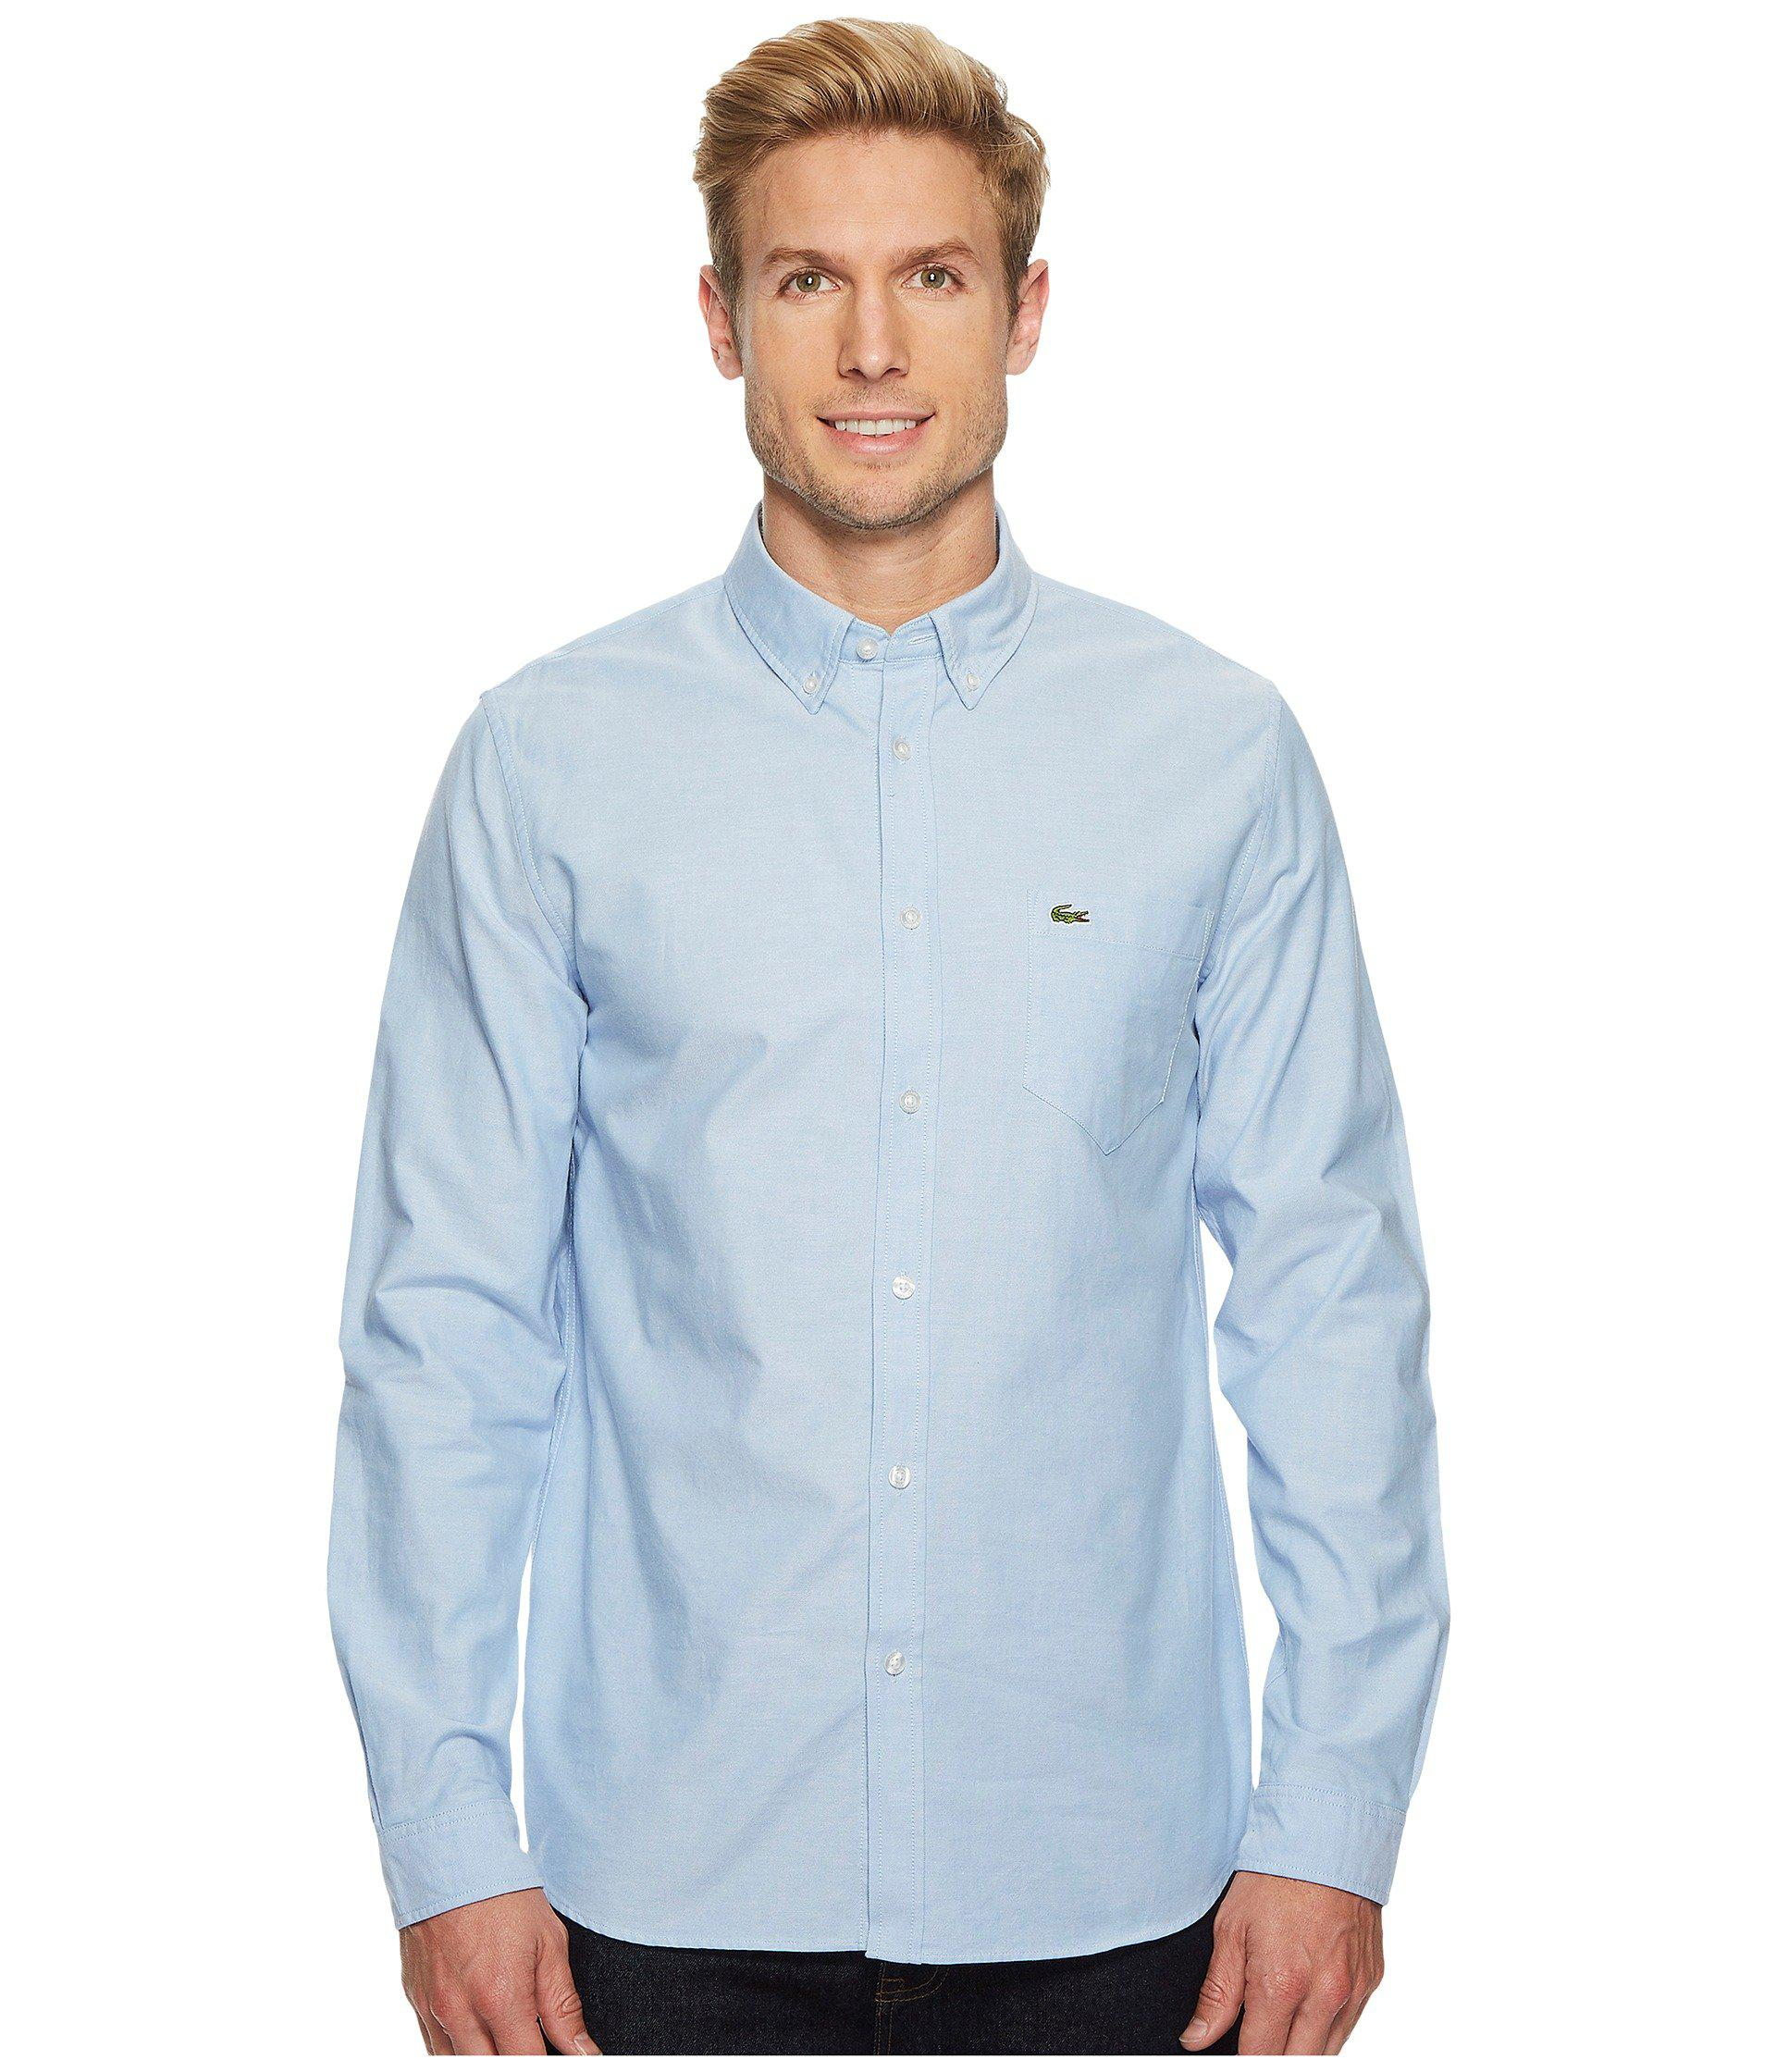 55bb208a0 Lyst - Lacoste Long Sleeve Oxford Button Down Collar Regular ...